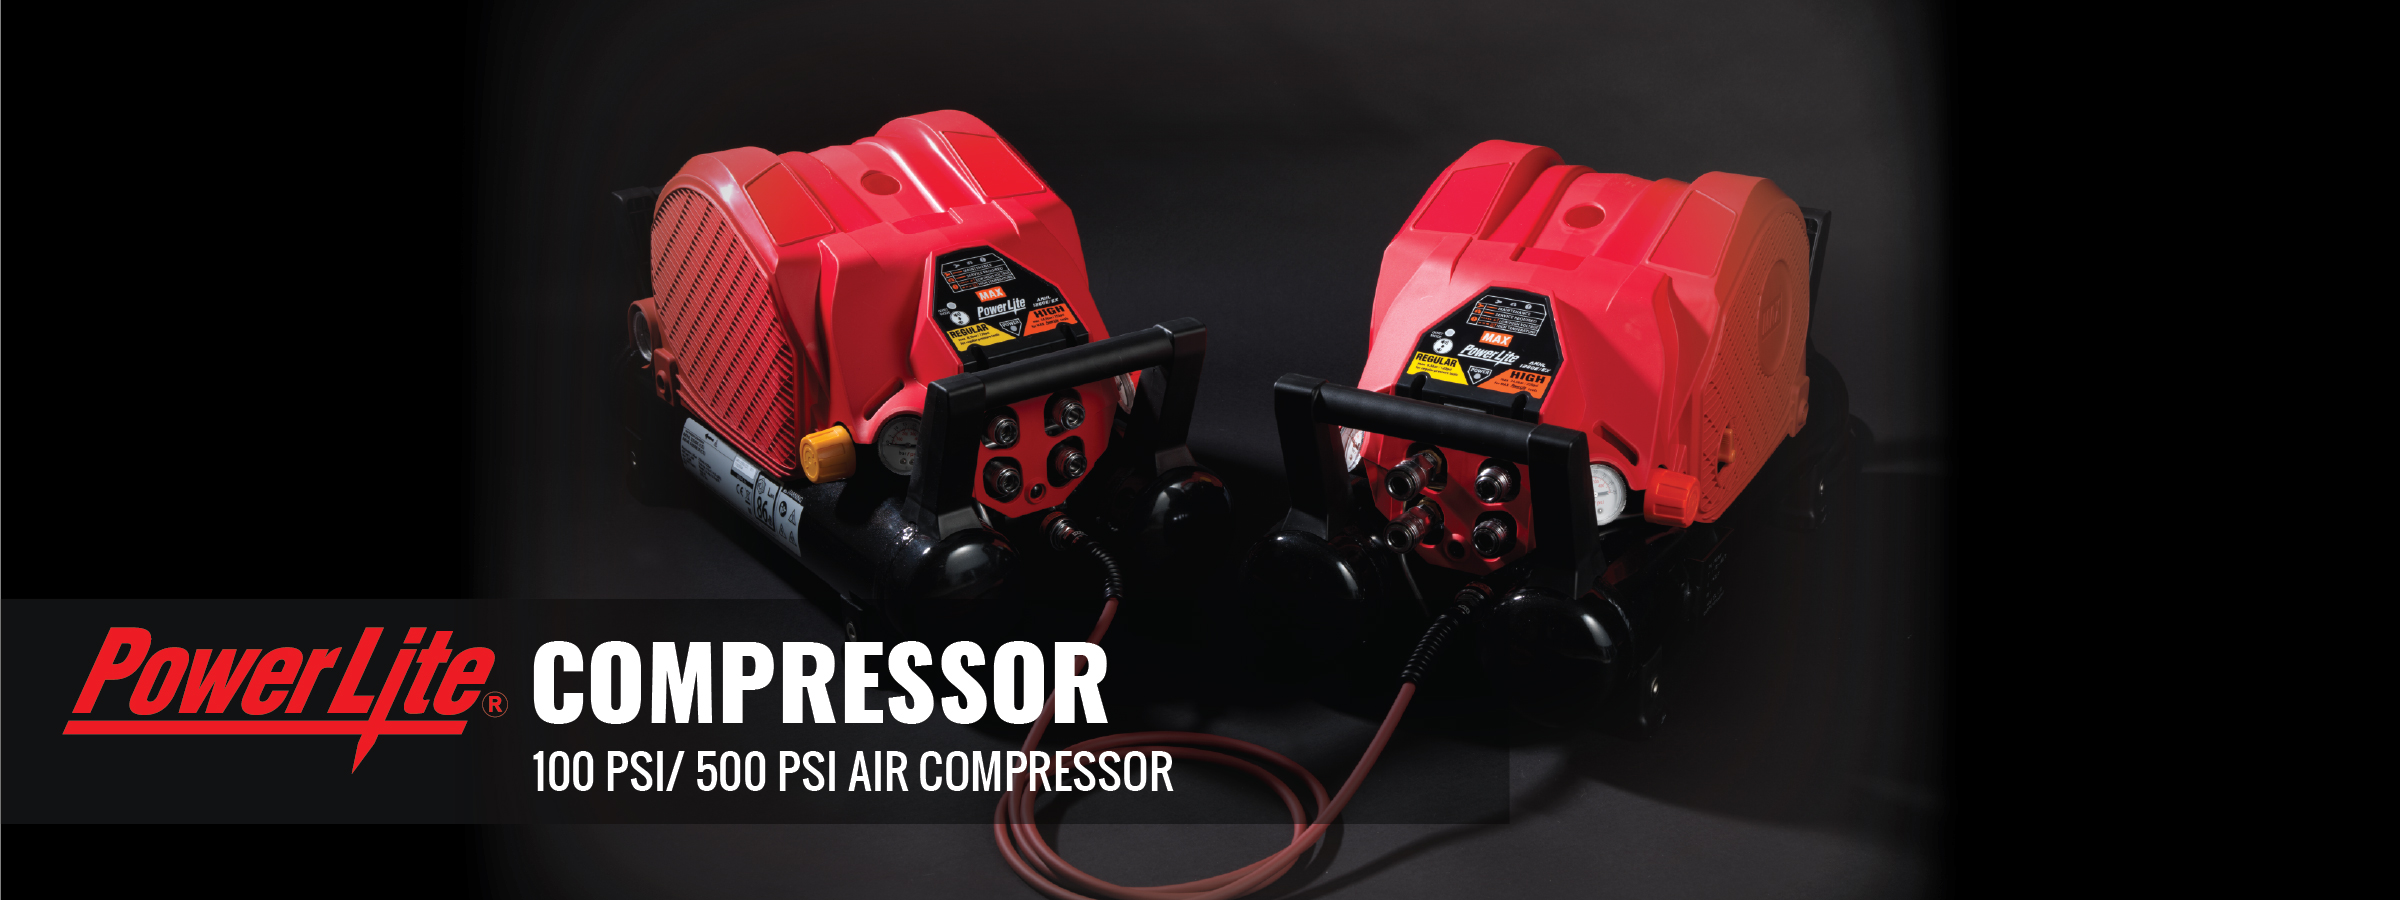 PowerLite Compressor